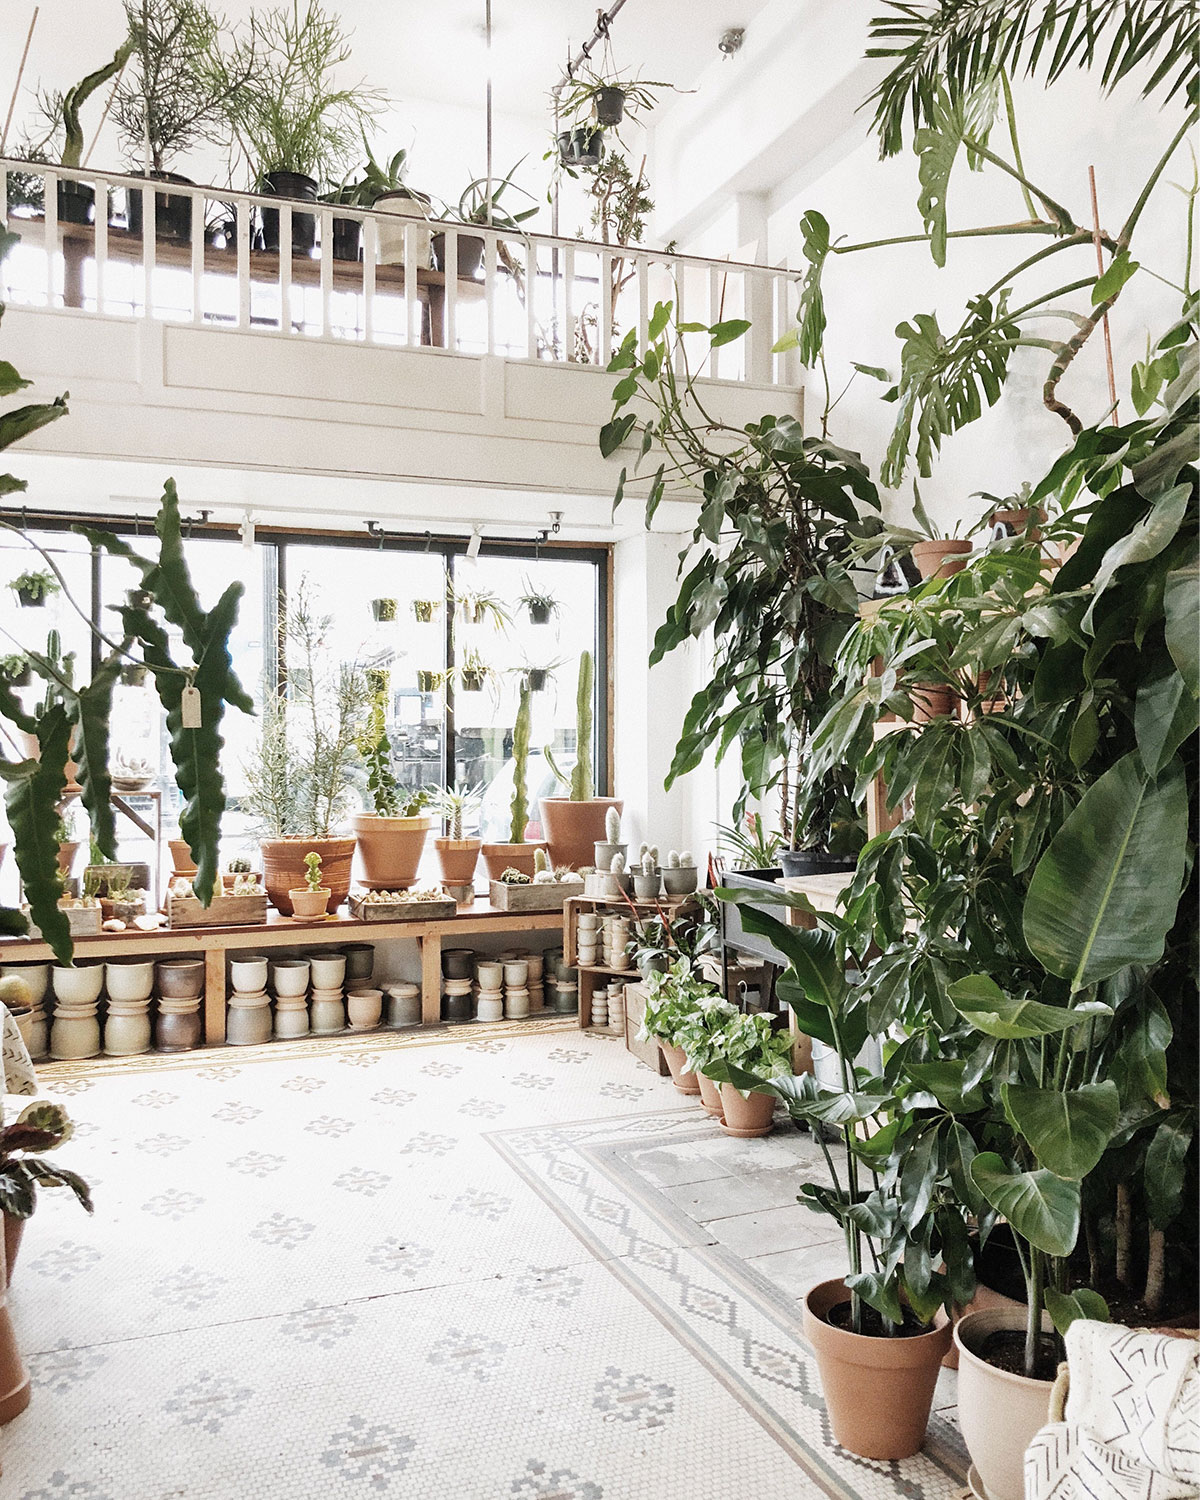 Inside of a small plant shop filled with greenery